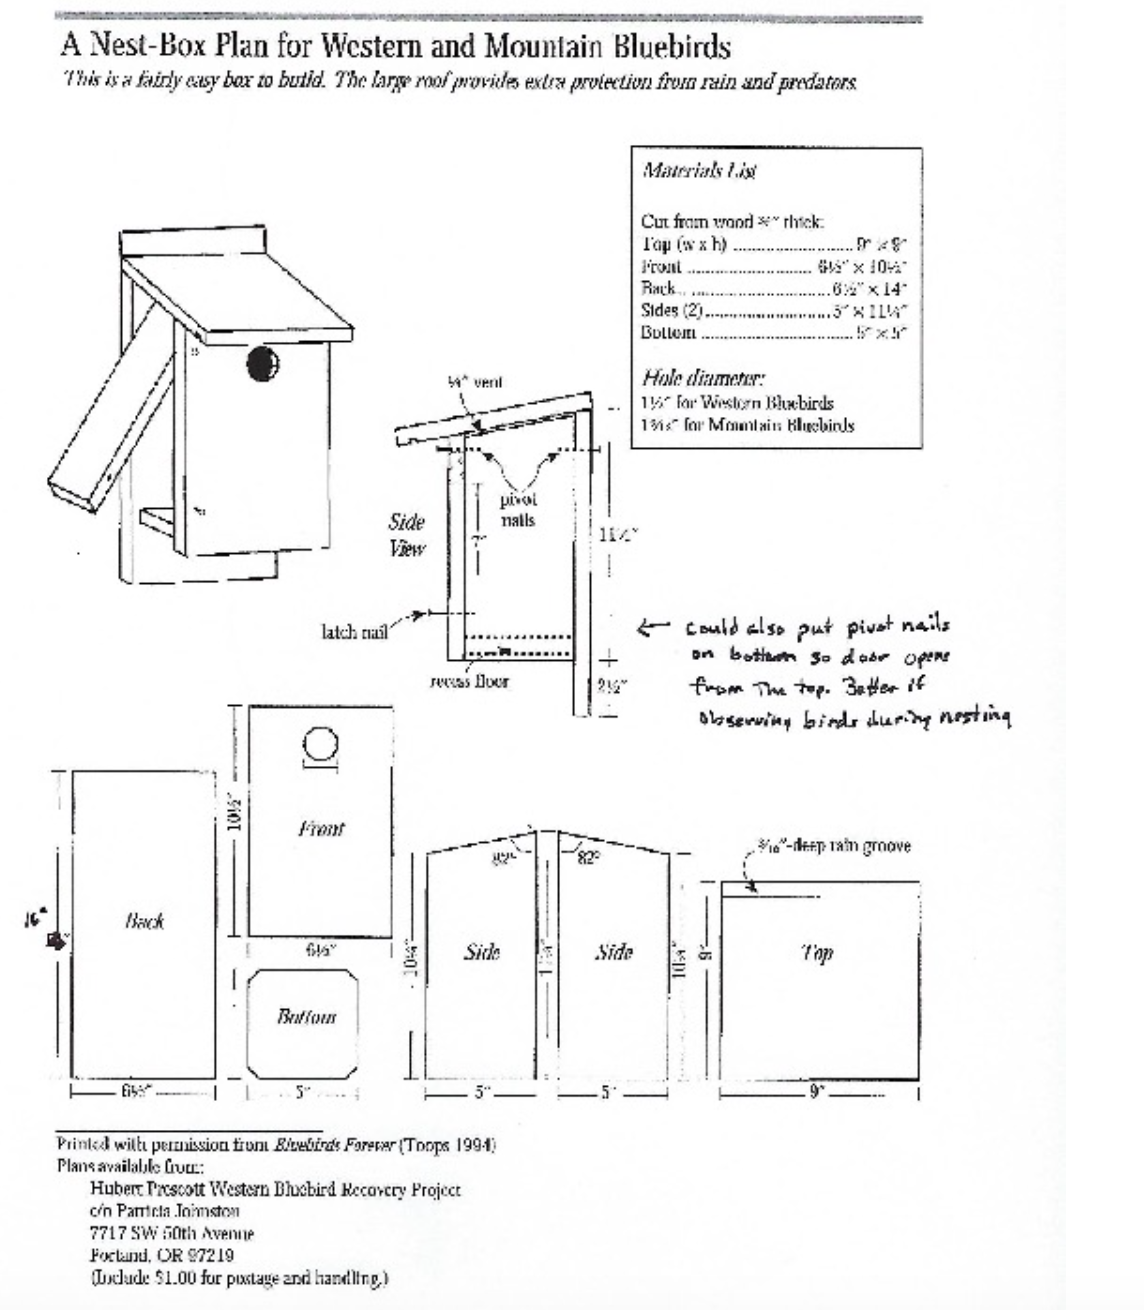 Nest Box Plan for Western and Mountain Bluebirds